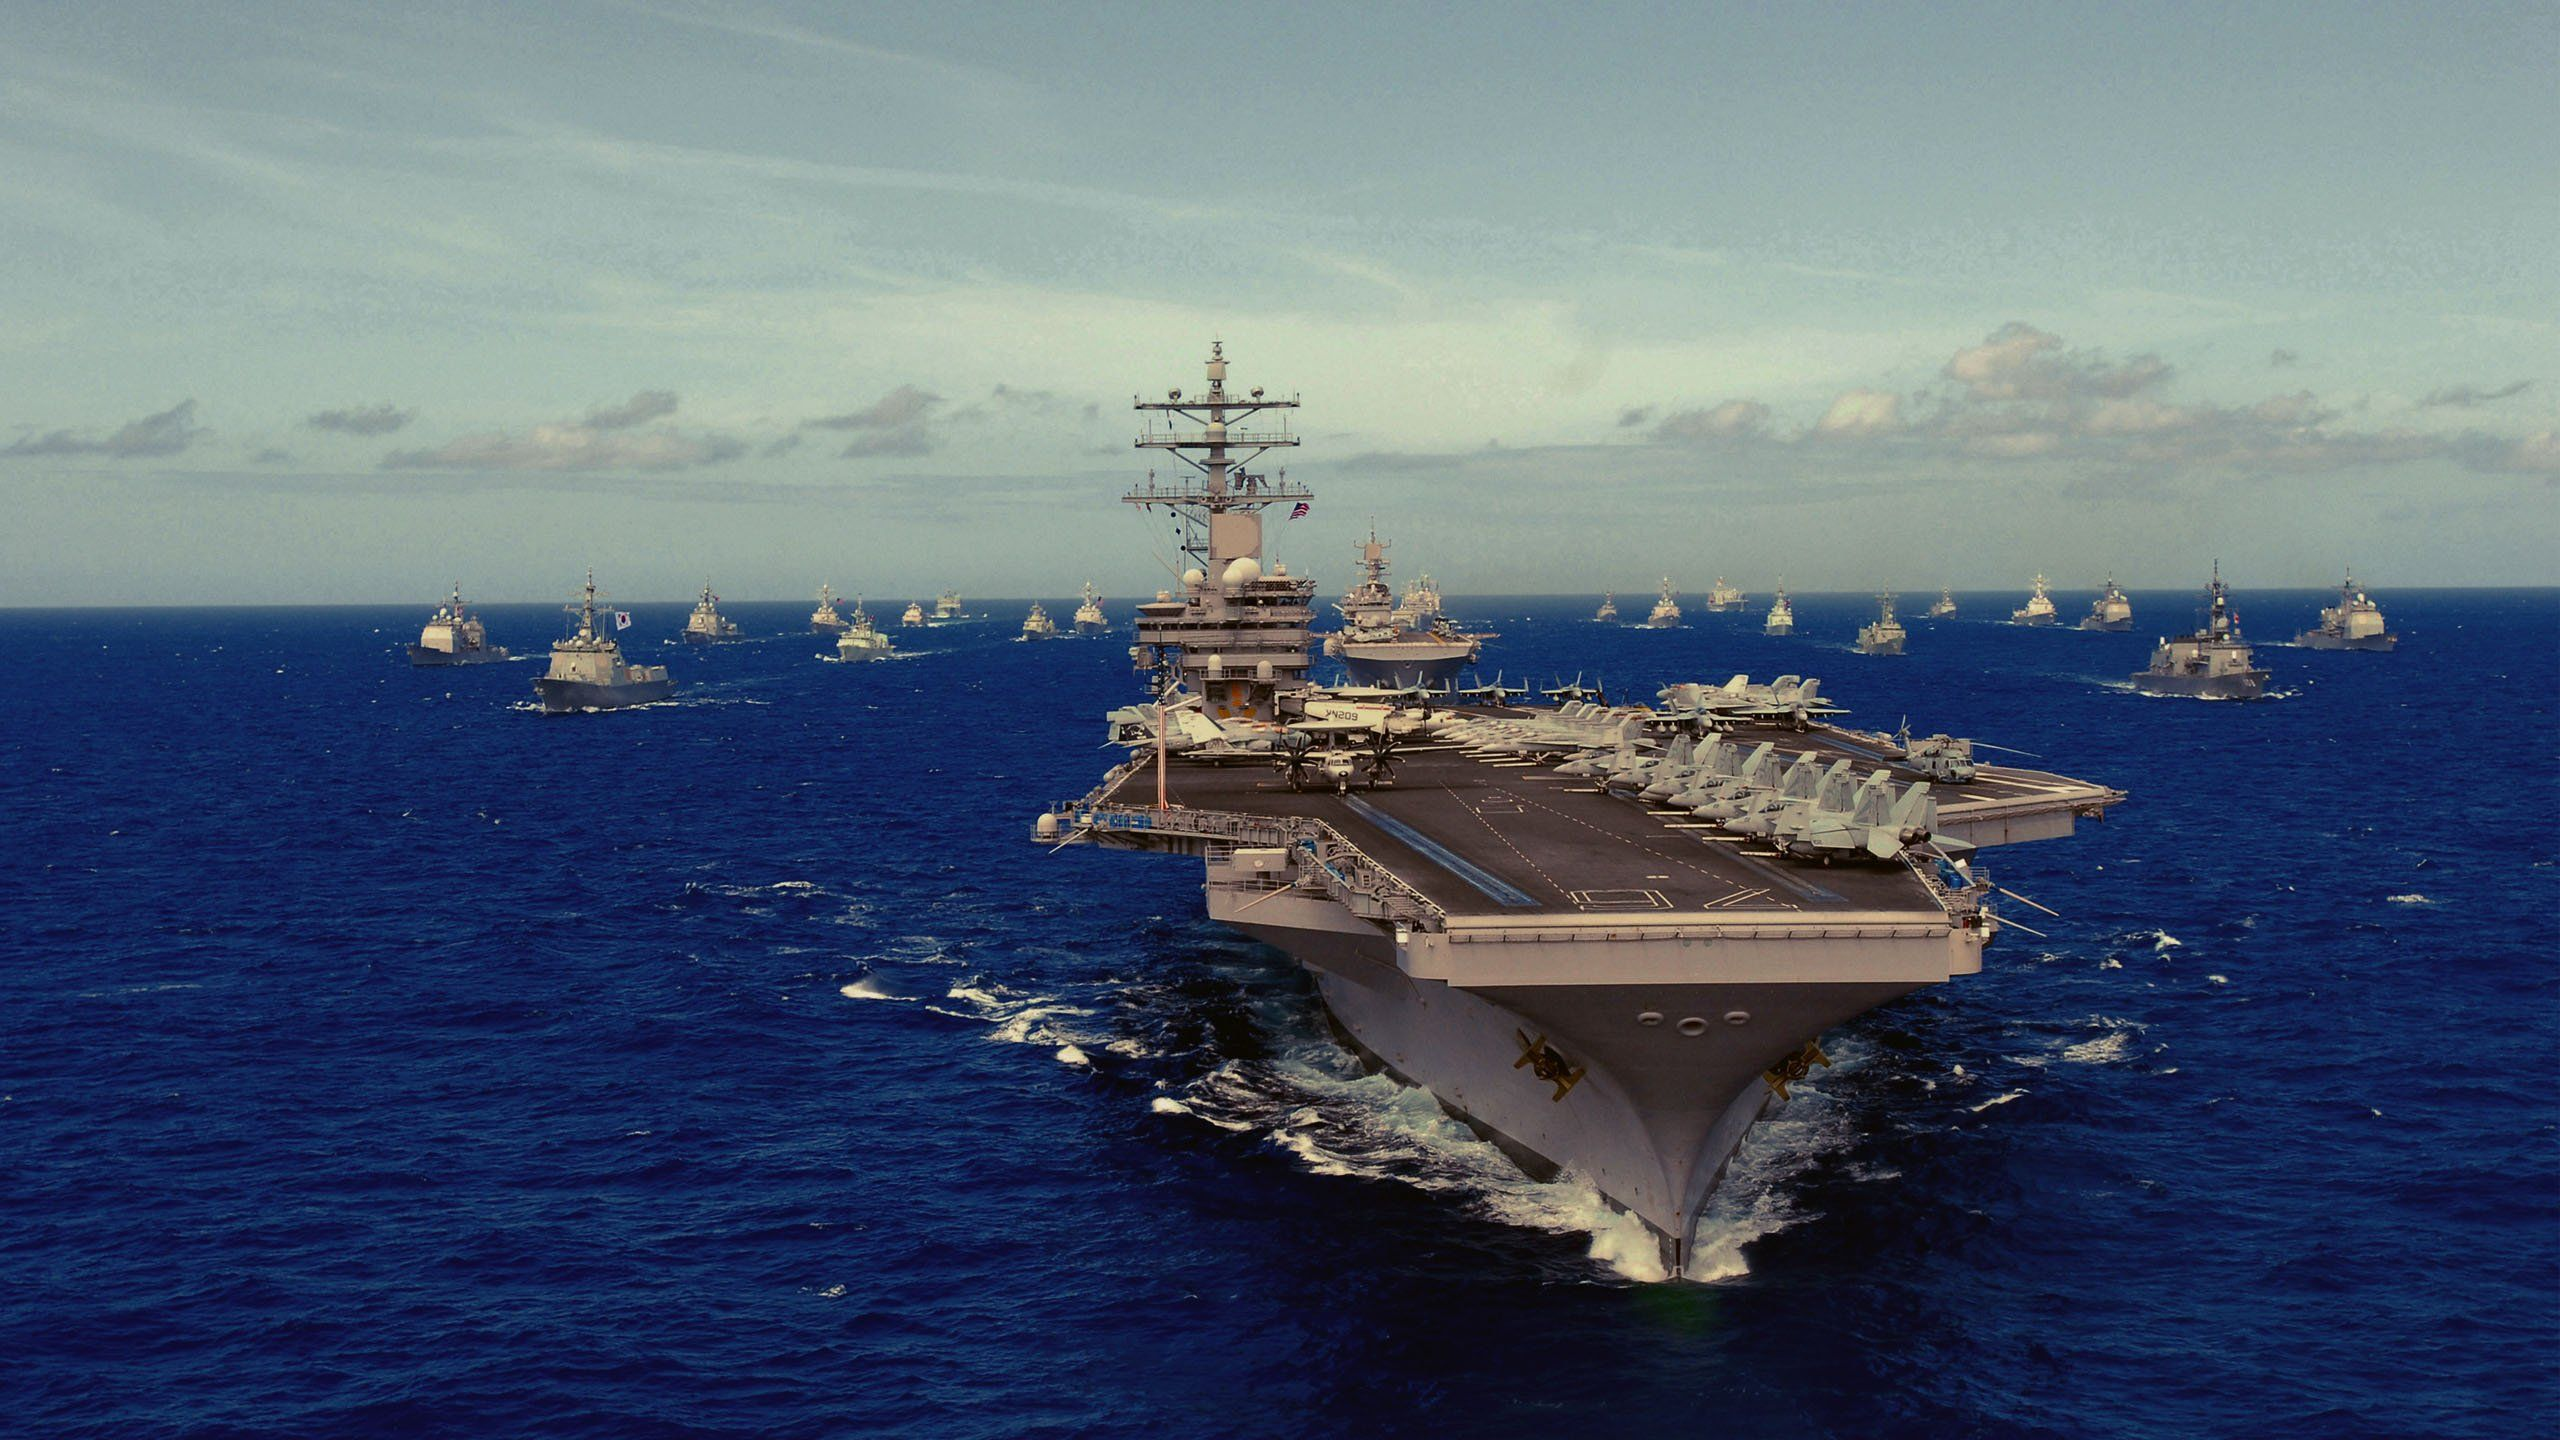 United States Navy wallpapers hd widescreen wallpapers right 2560x1440